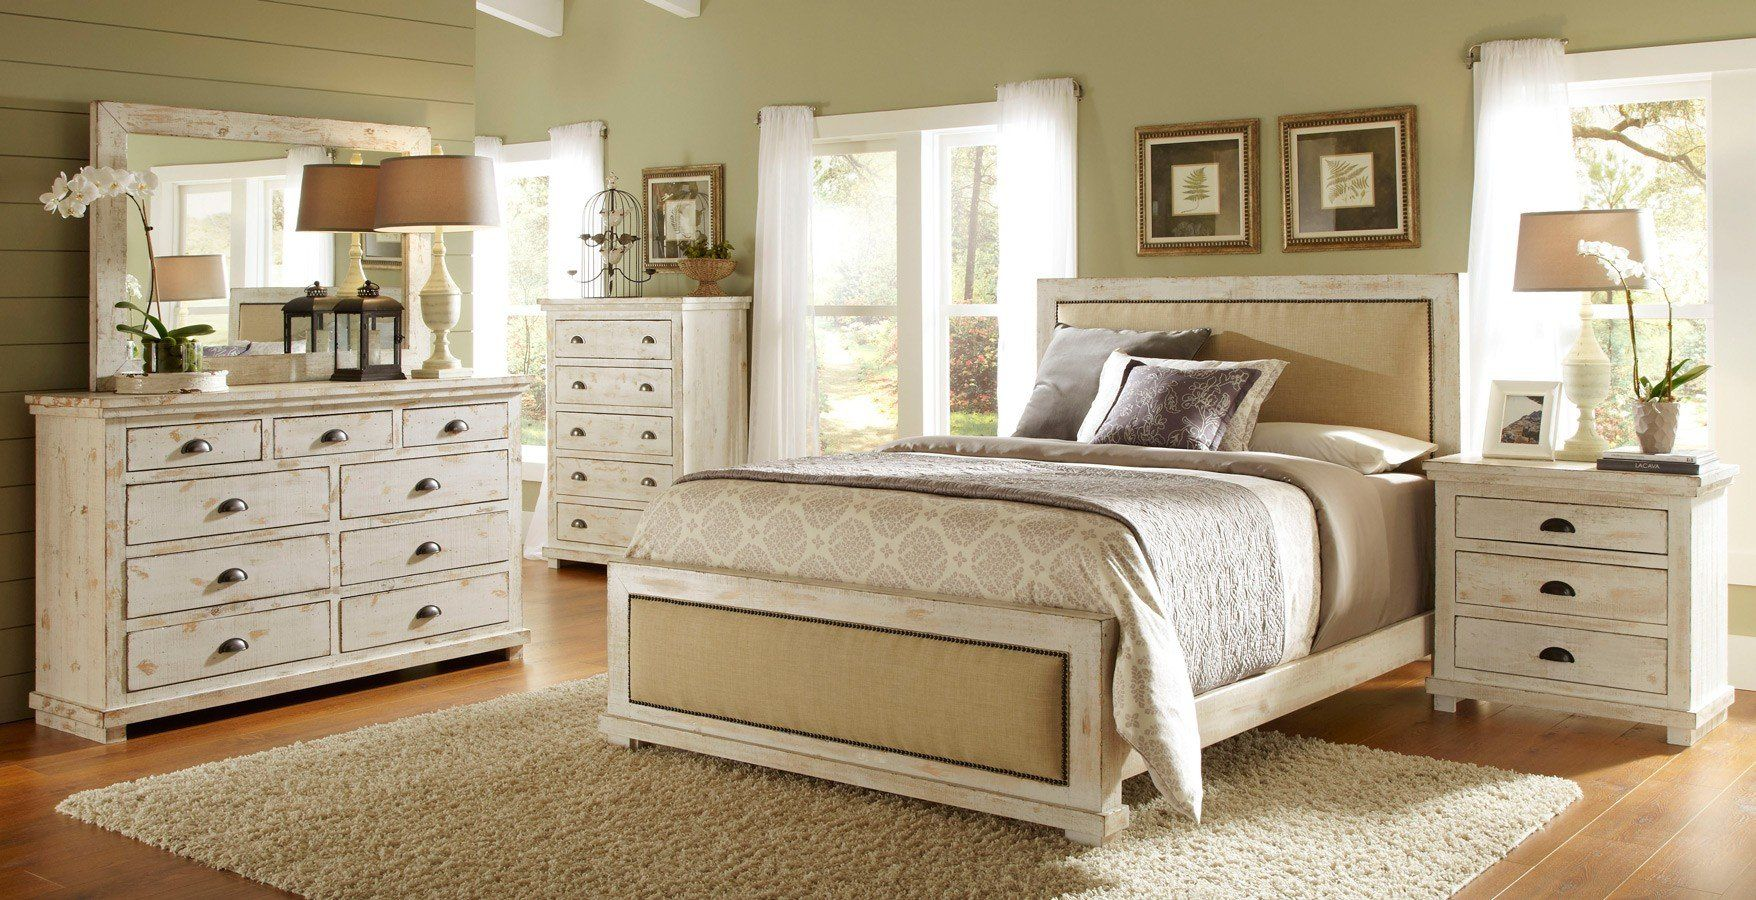 Willow Upholstered Bedroom Set Distressed White In 2020 With